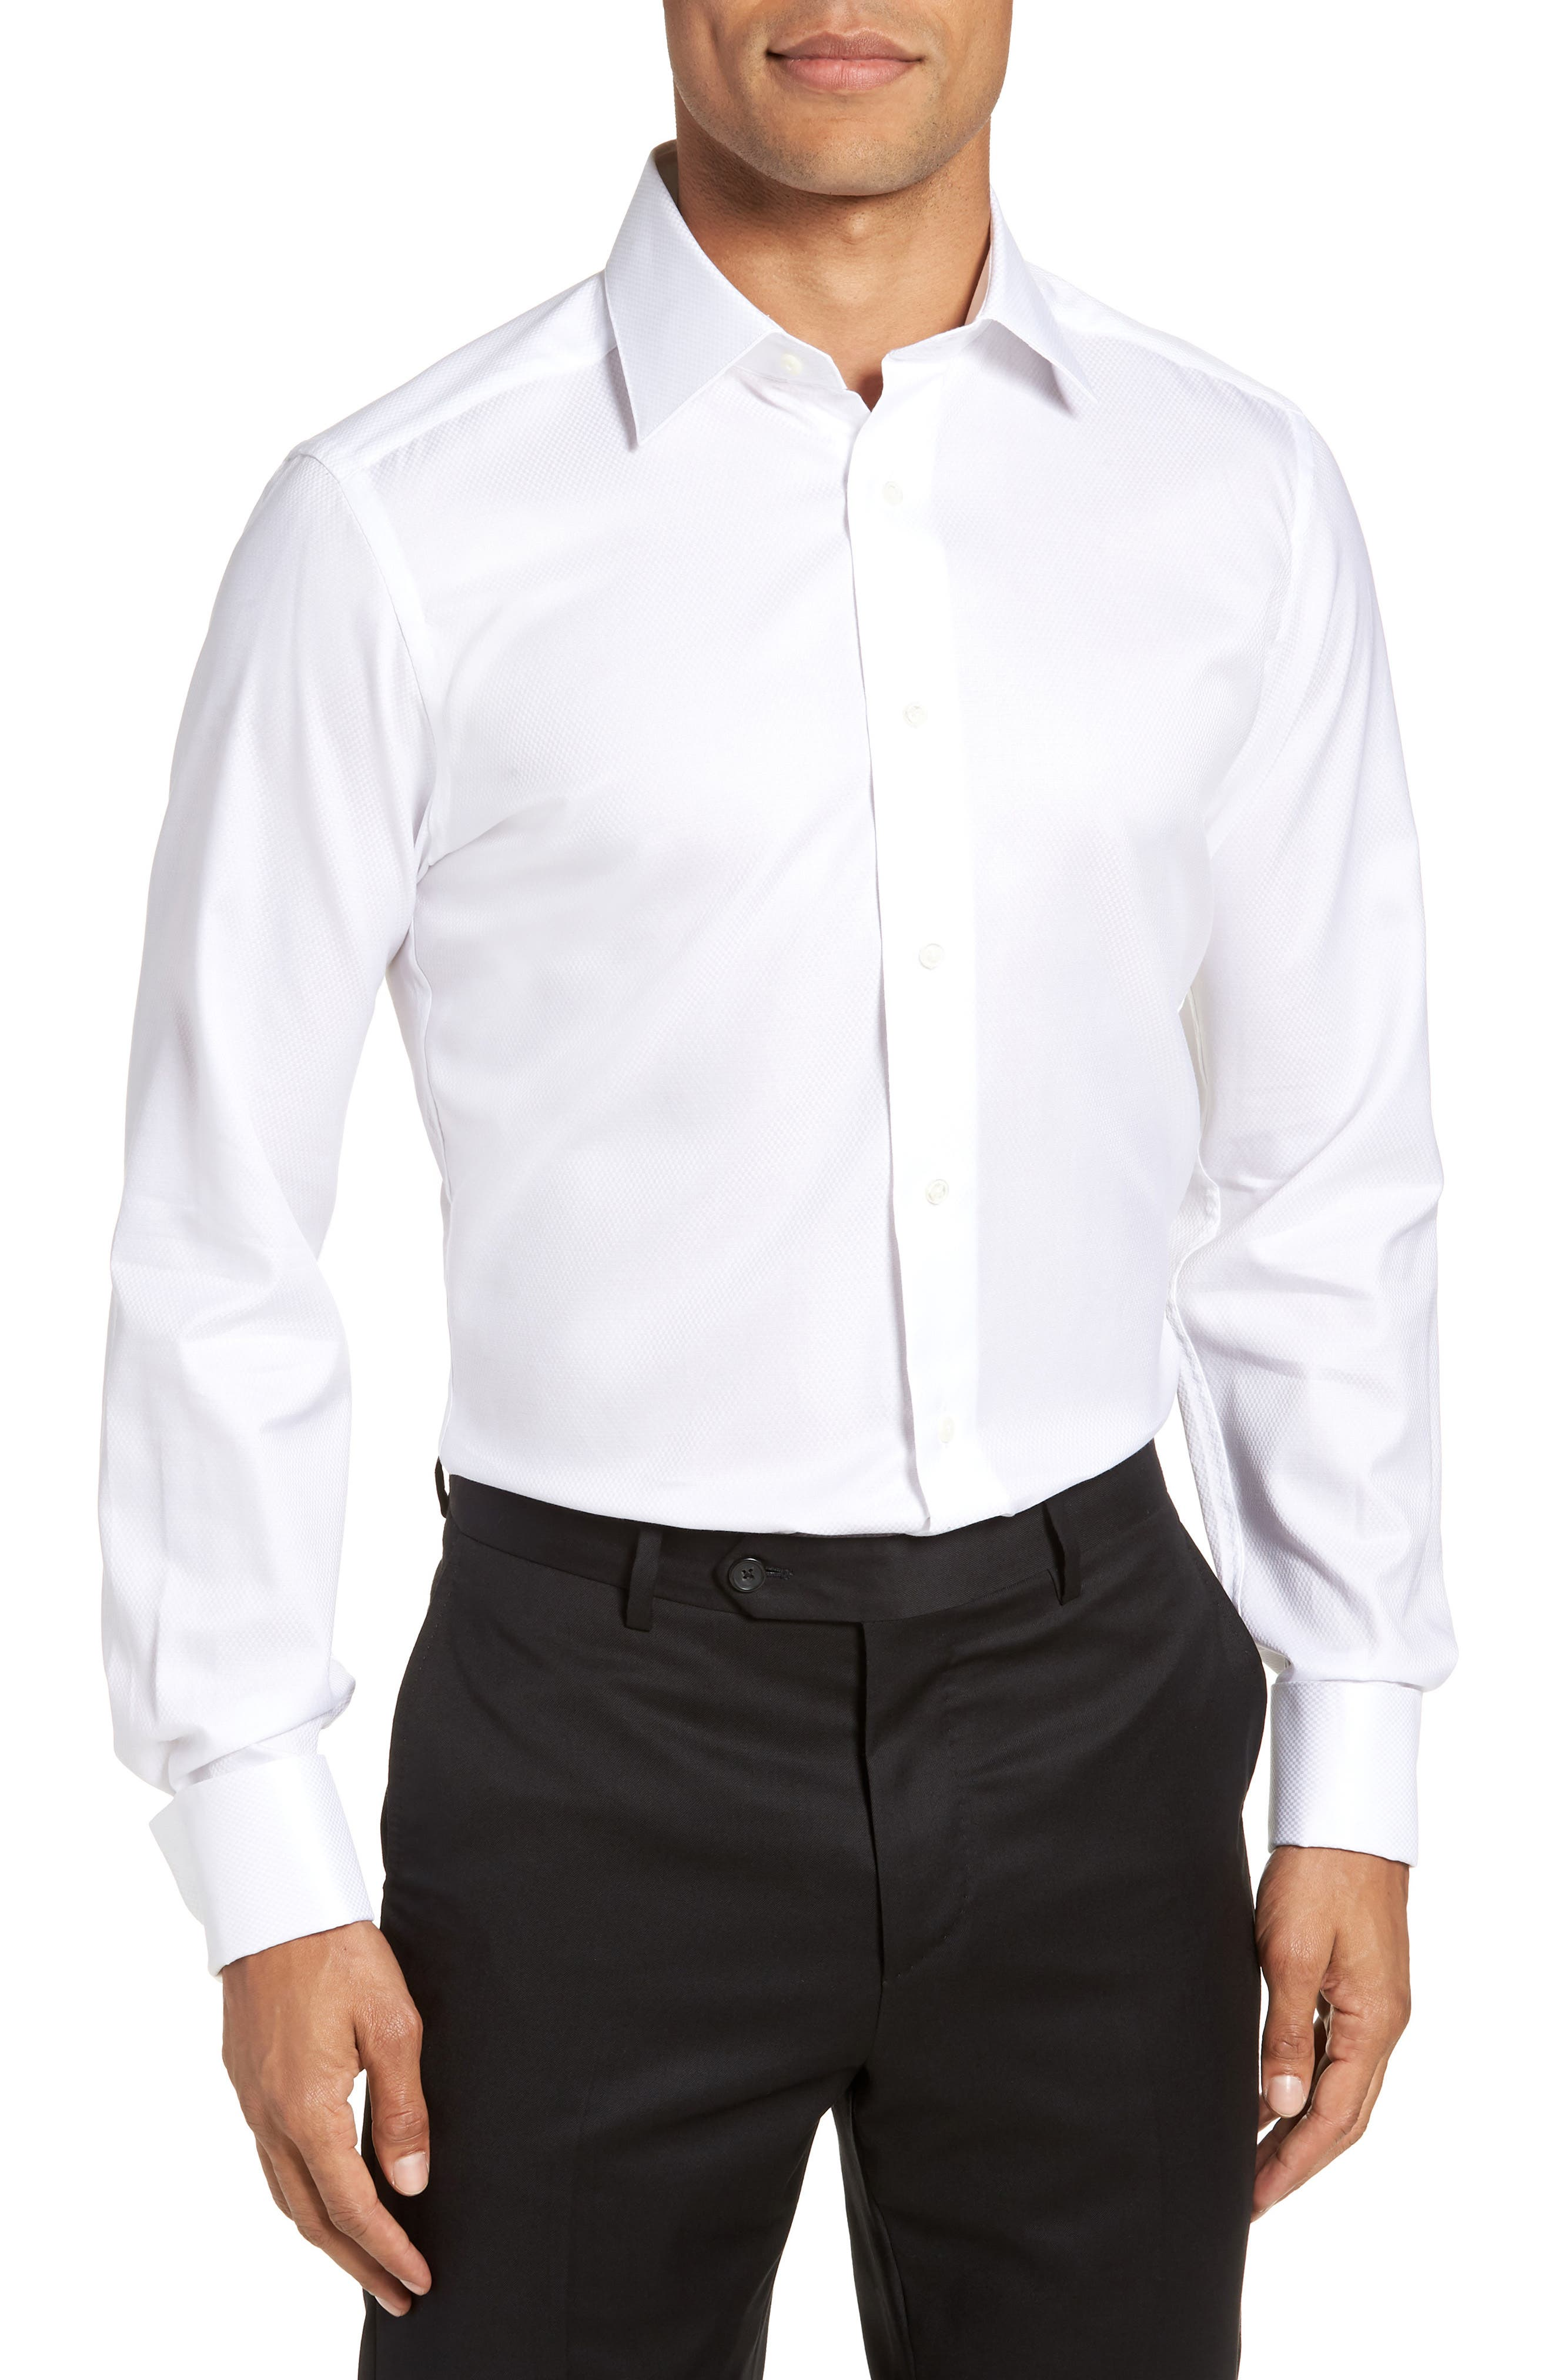 US Gifts Comfort Shirt French Cuffs